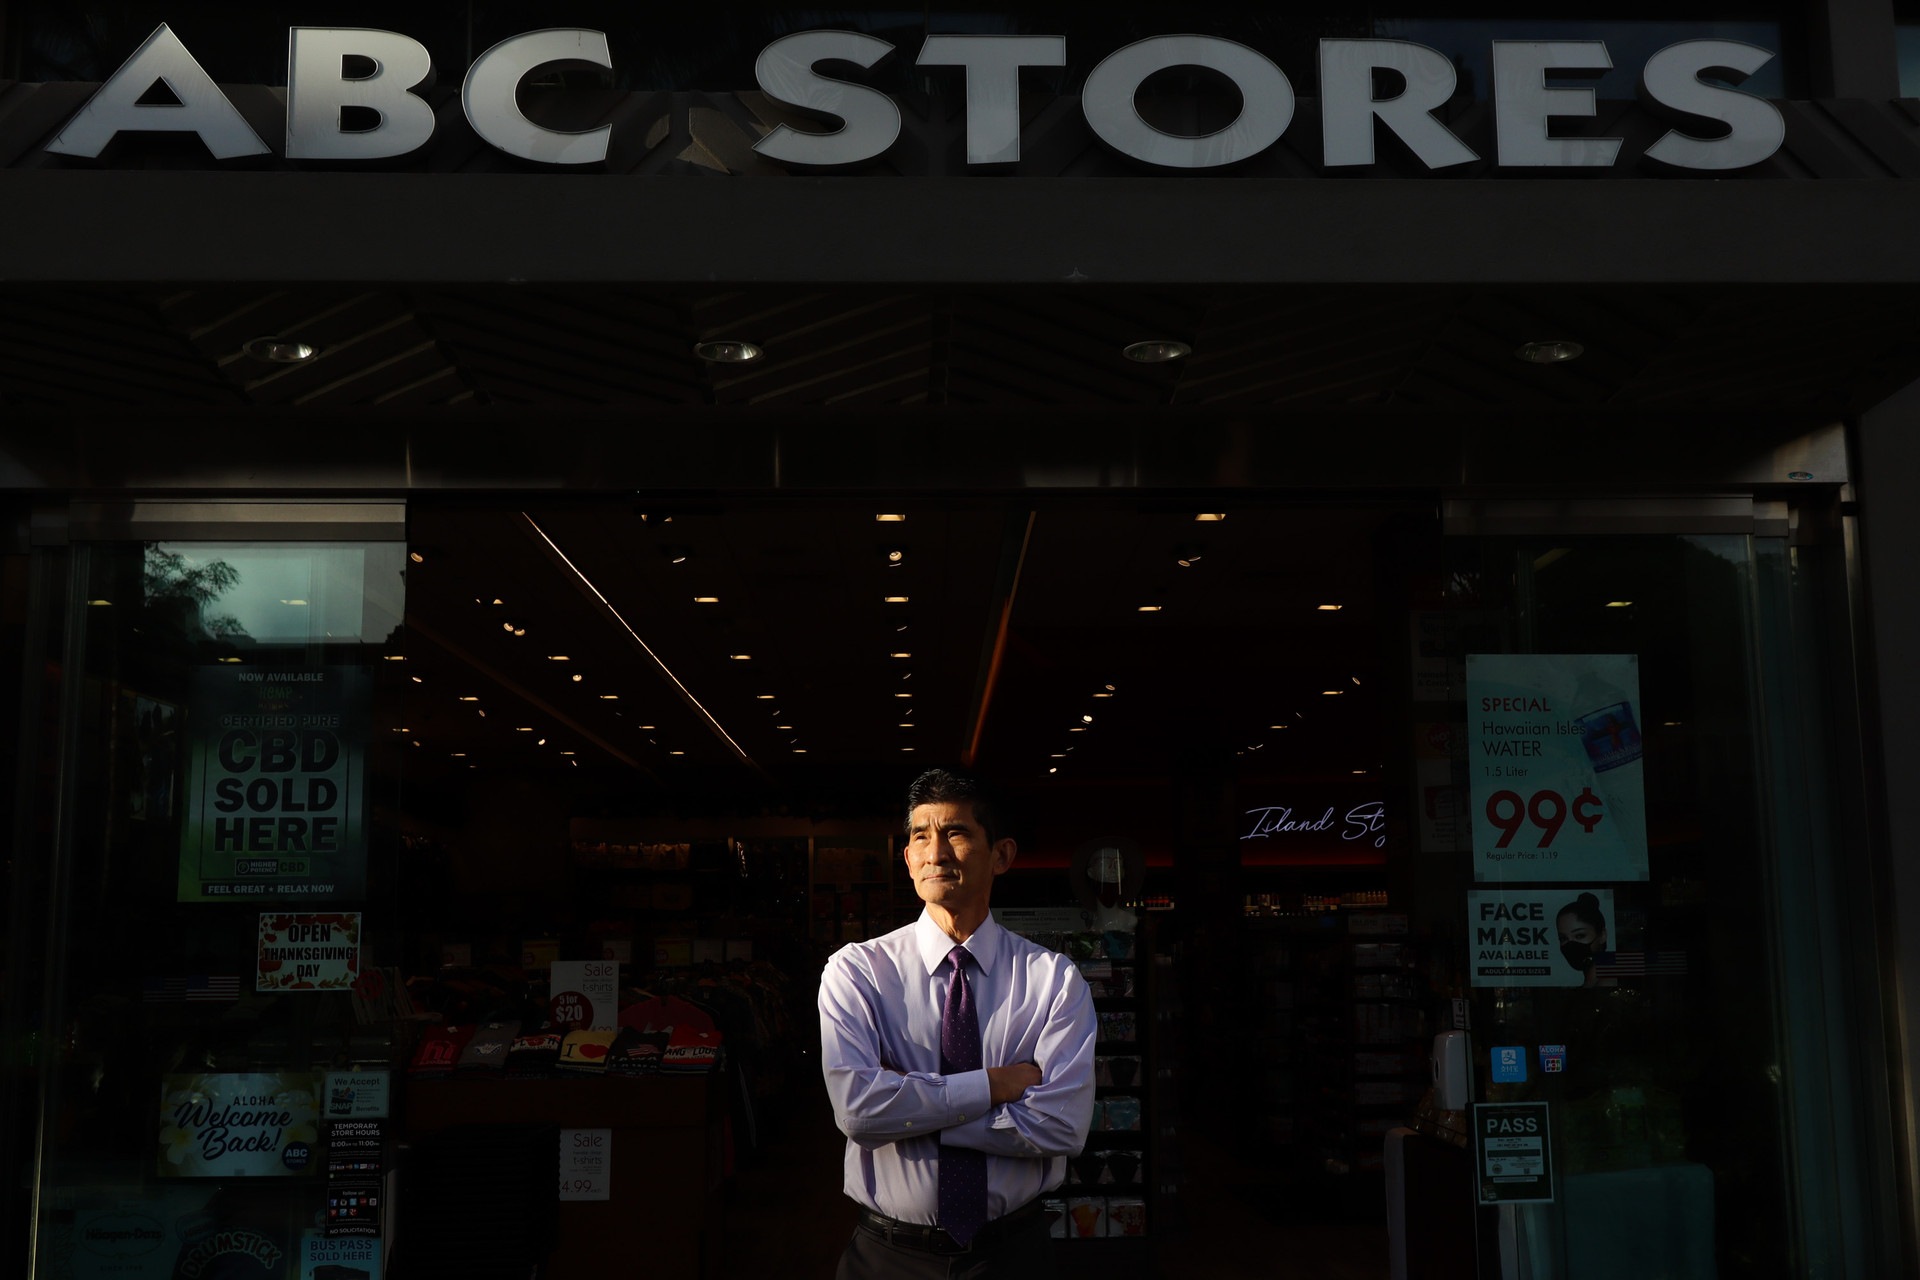 Paul Kosasa, owner of ABC Stores, a Honolulu based chain convenience store poses for a portrait infront of the storefront at International Market Place, Waikiki, Honolulu on November 20, 2020. The first ABC Store was opened in Waikiki in 1964 by is parents, Minnie and Sidney Kosasa. CREDIT: Shafkat Anowar for The Wall Street Journal.